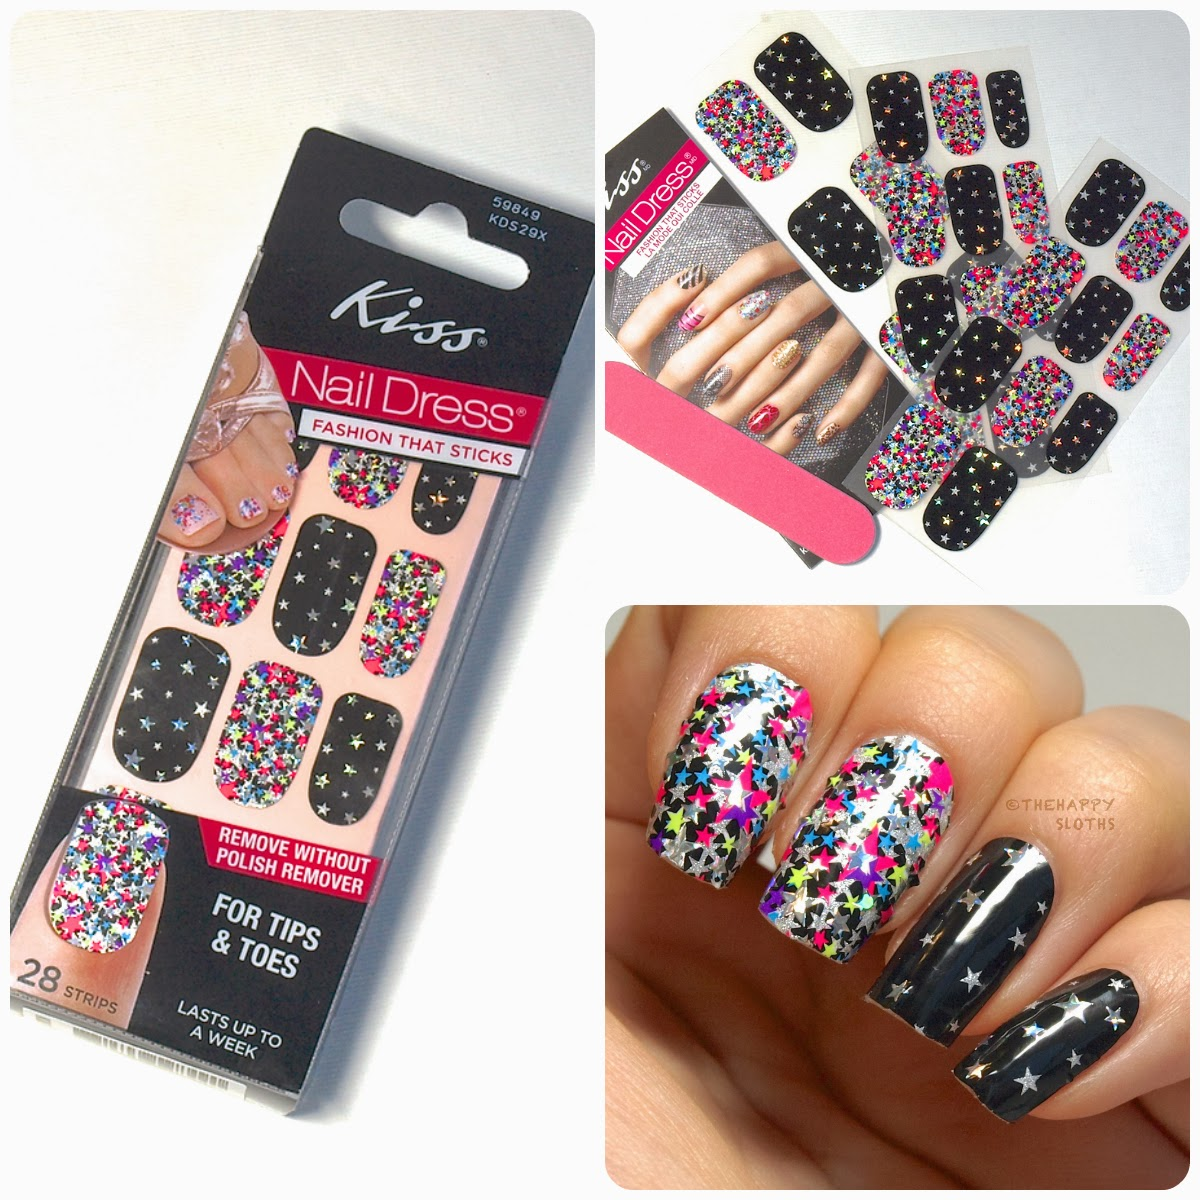 Kiss Nail Dress Nail Strips: Review and Swatches | The Happy Sloths ...